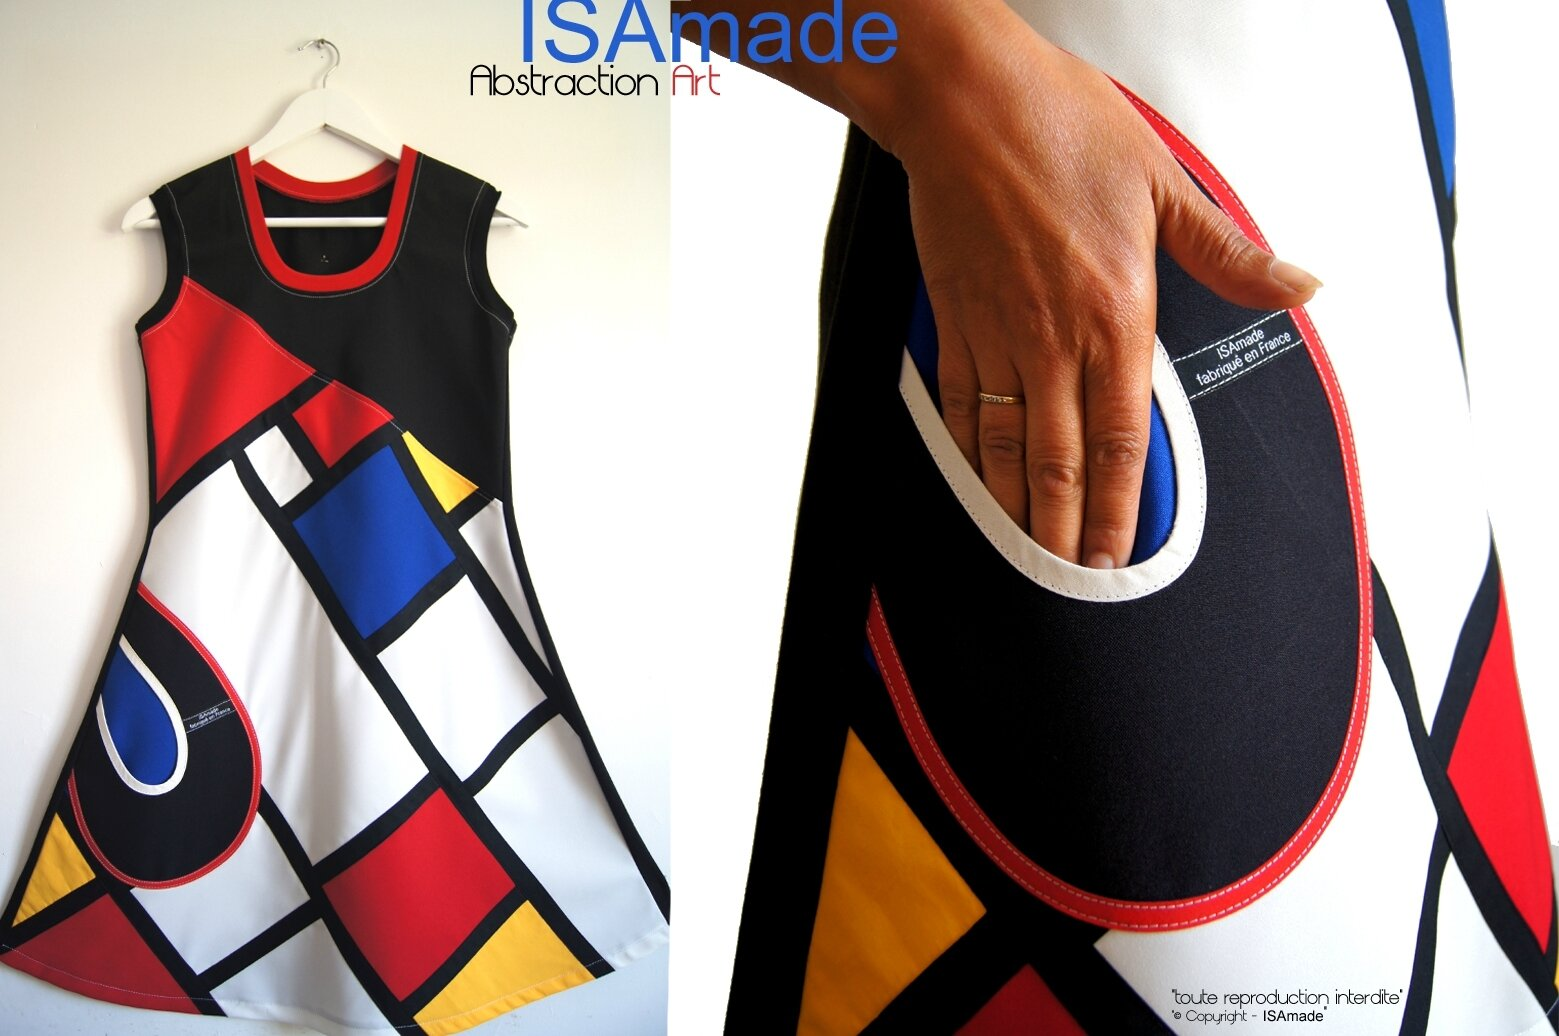 Robe patchwork graphique Arty patchwork chic créateur, un Automne aux influences Sixties : la robe »Abstraction Art » Made in France